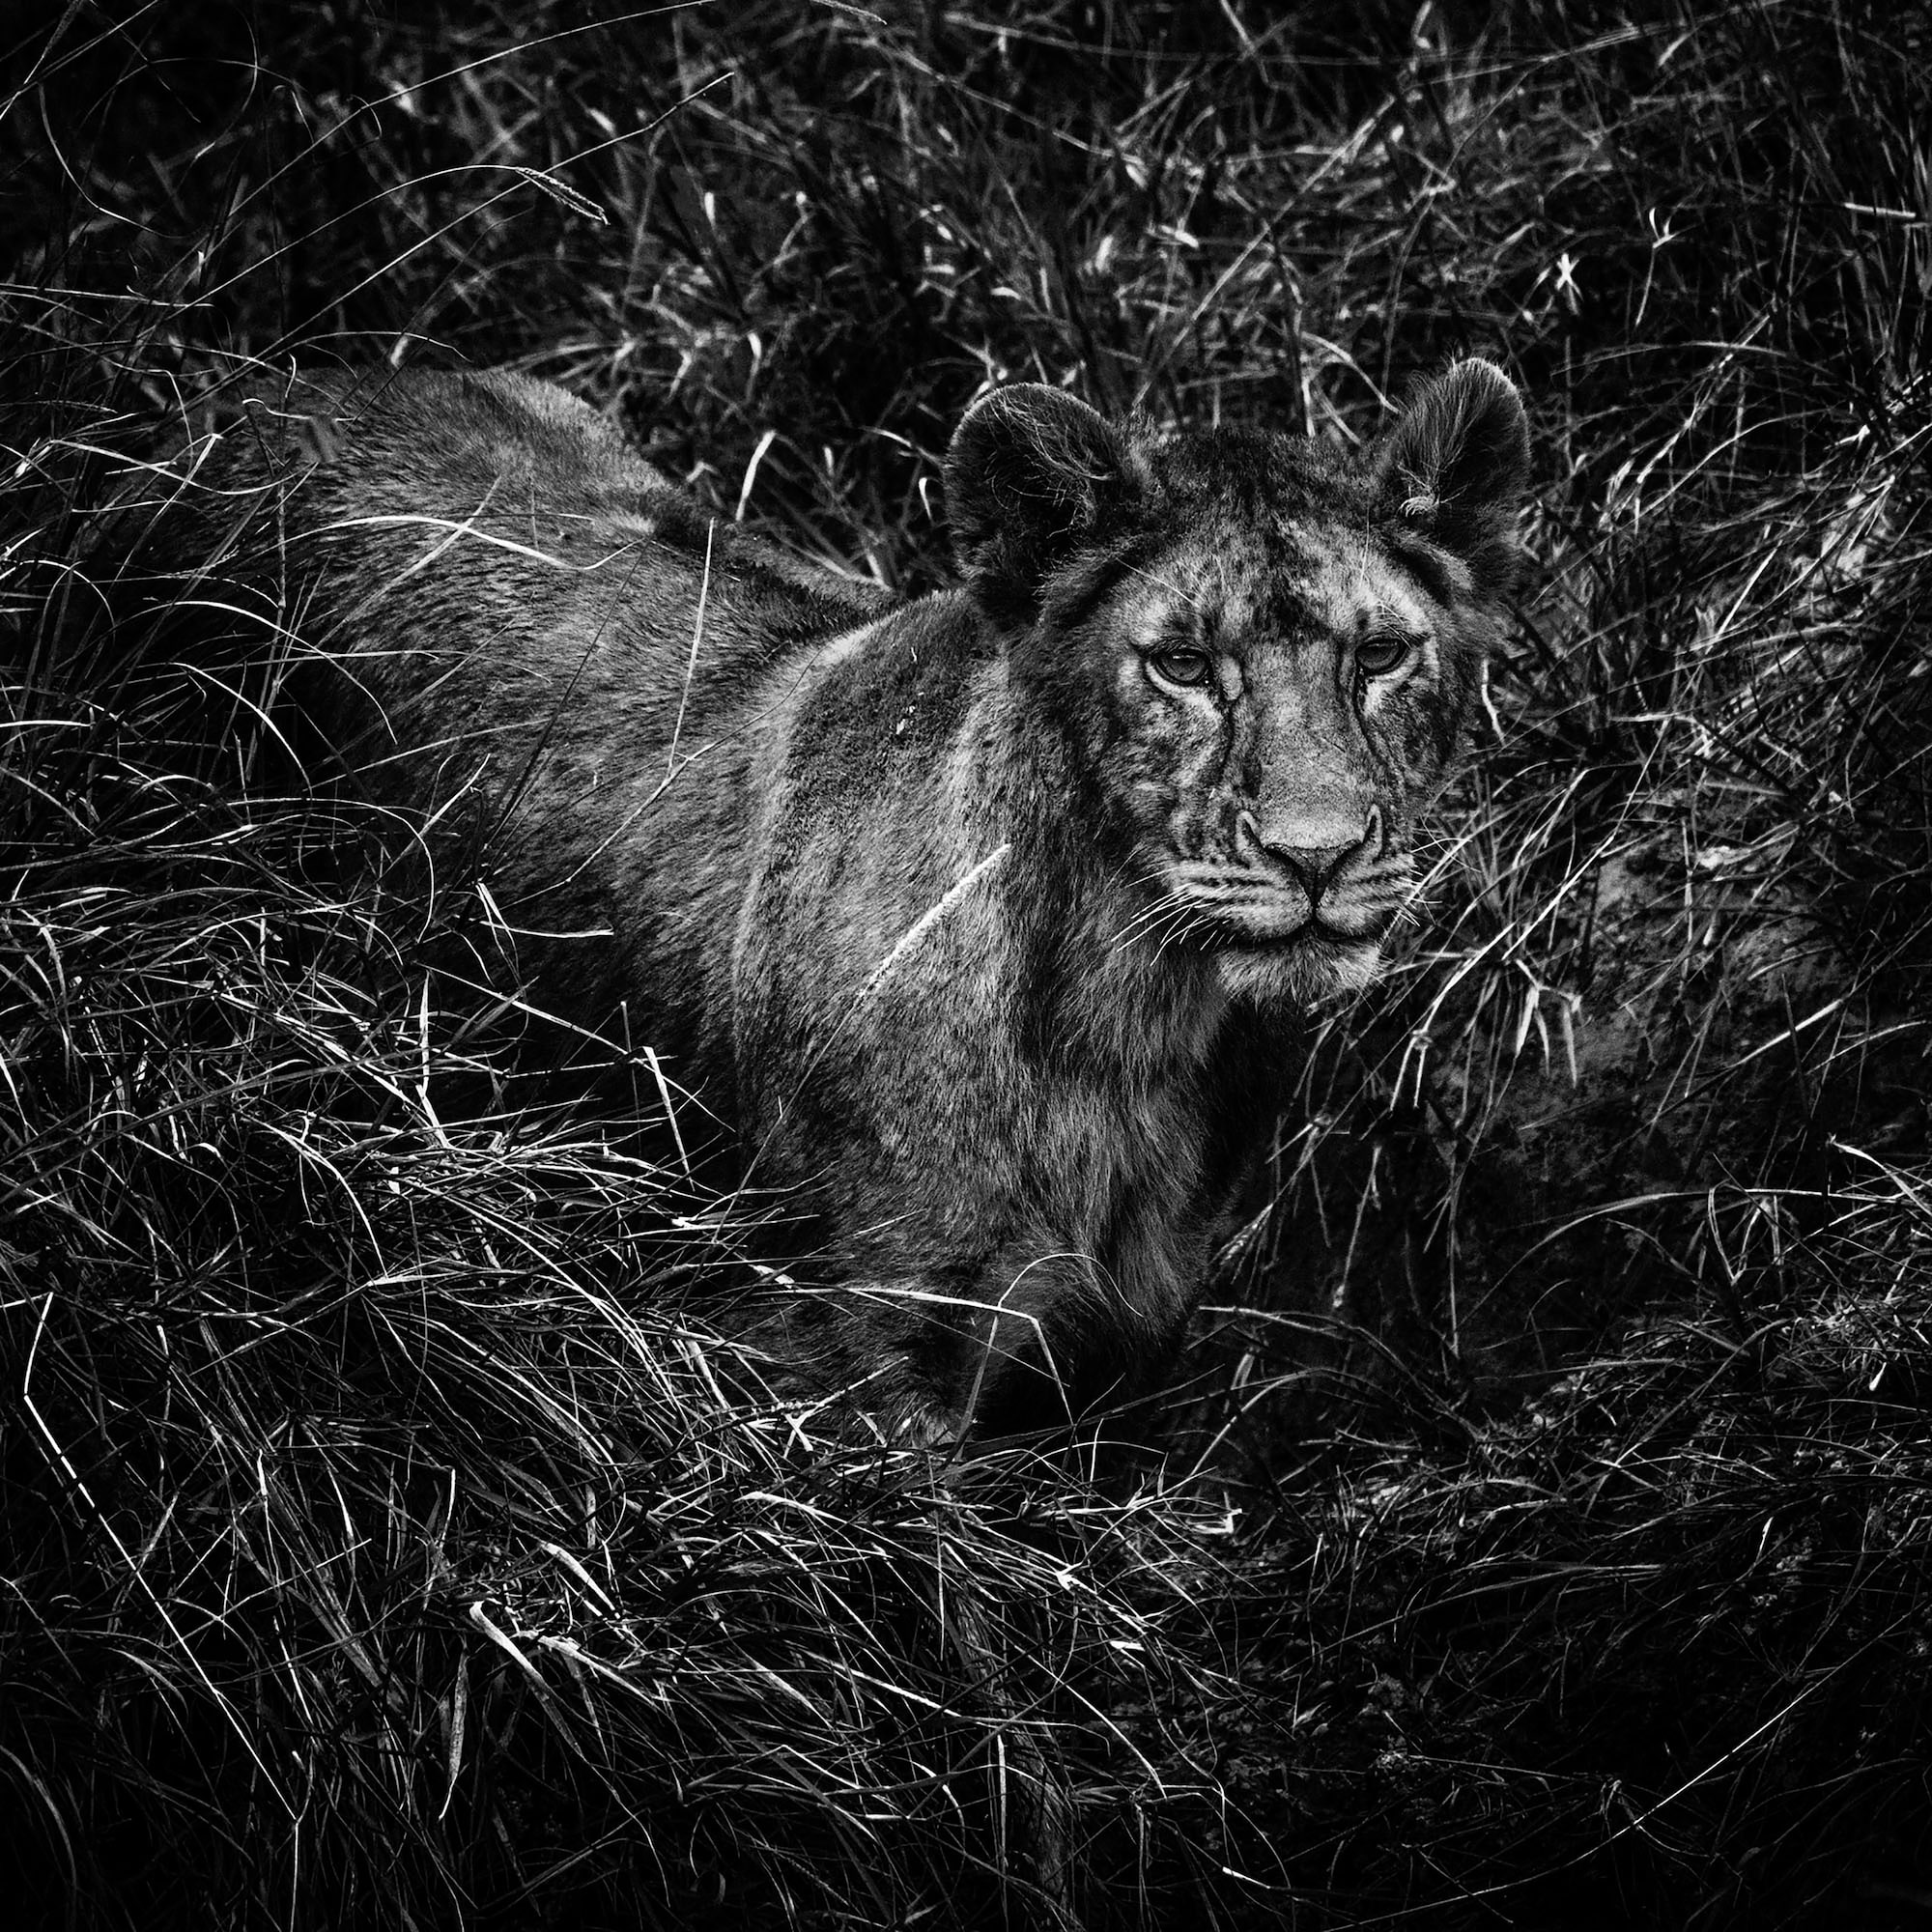 laurent baheux sony alpha 9 birds eye view of a lioness sitting quietly in the grass